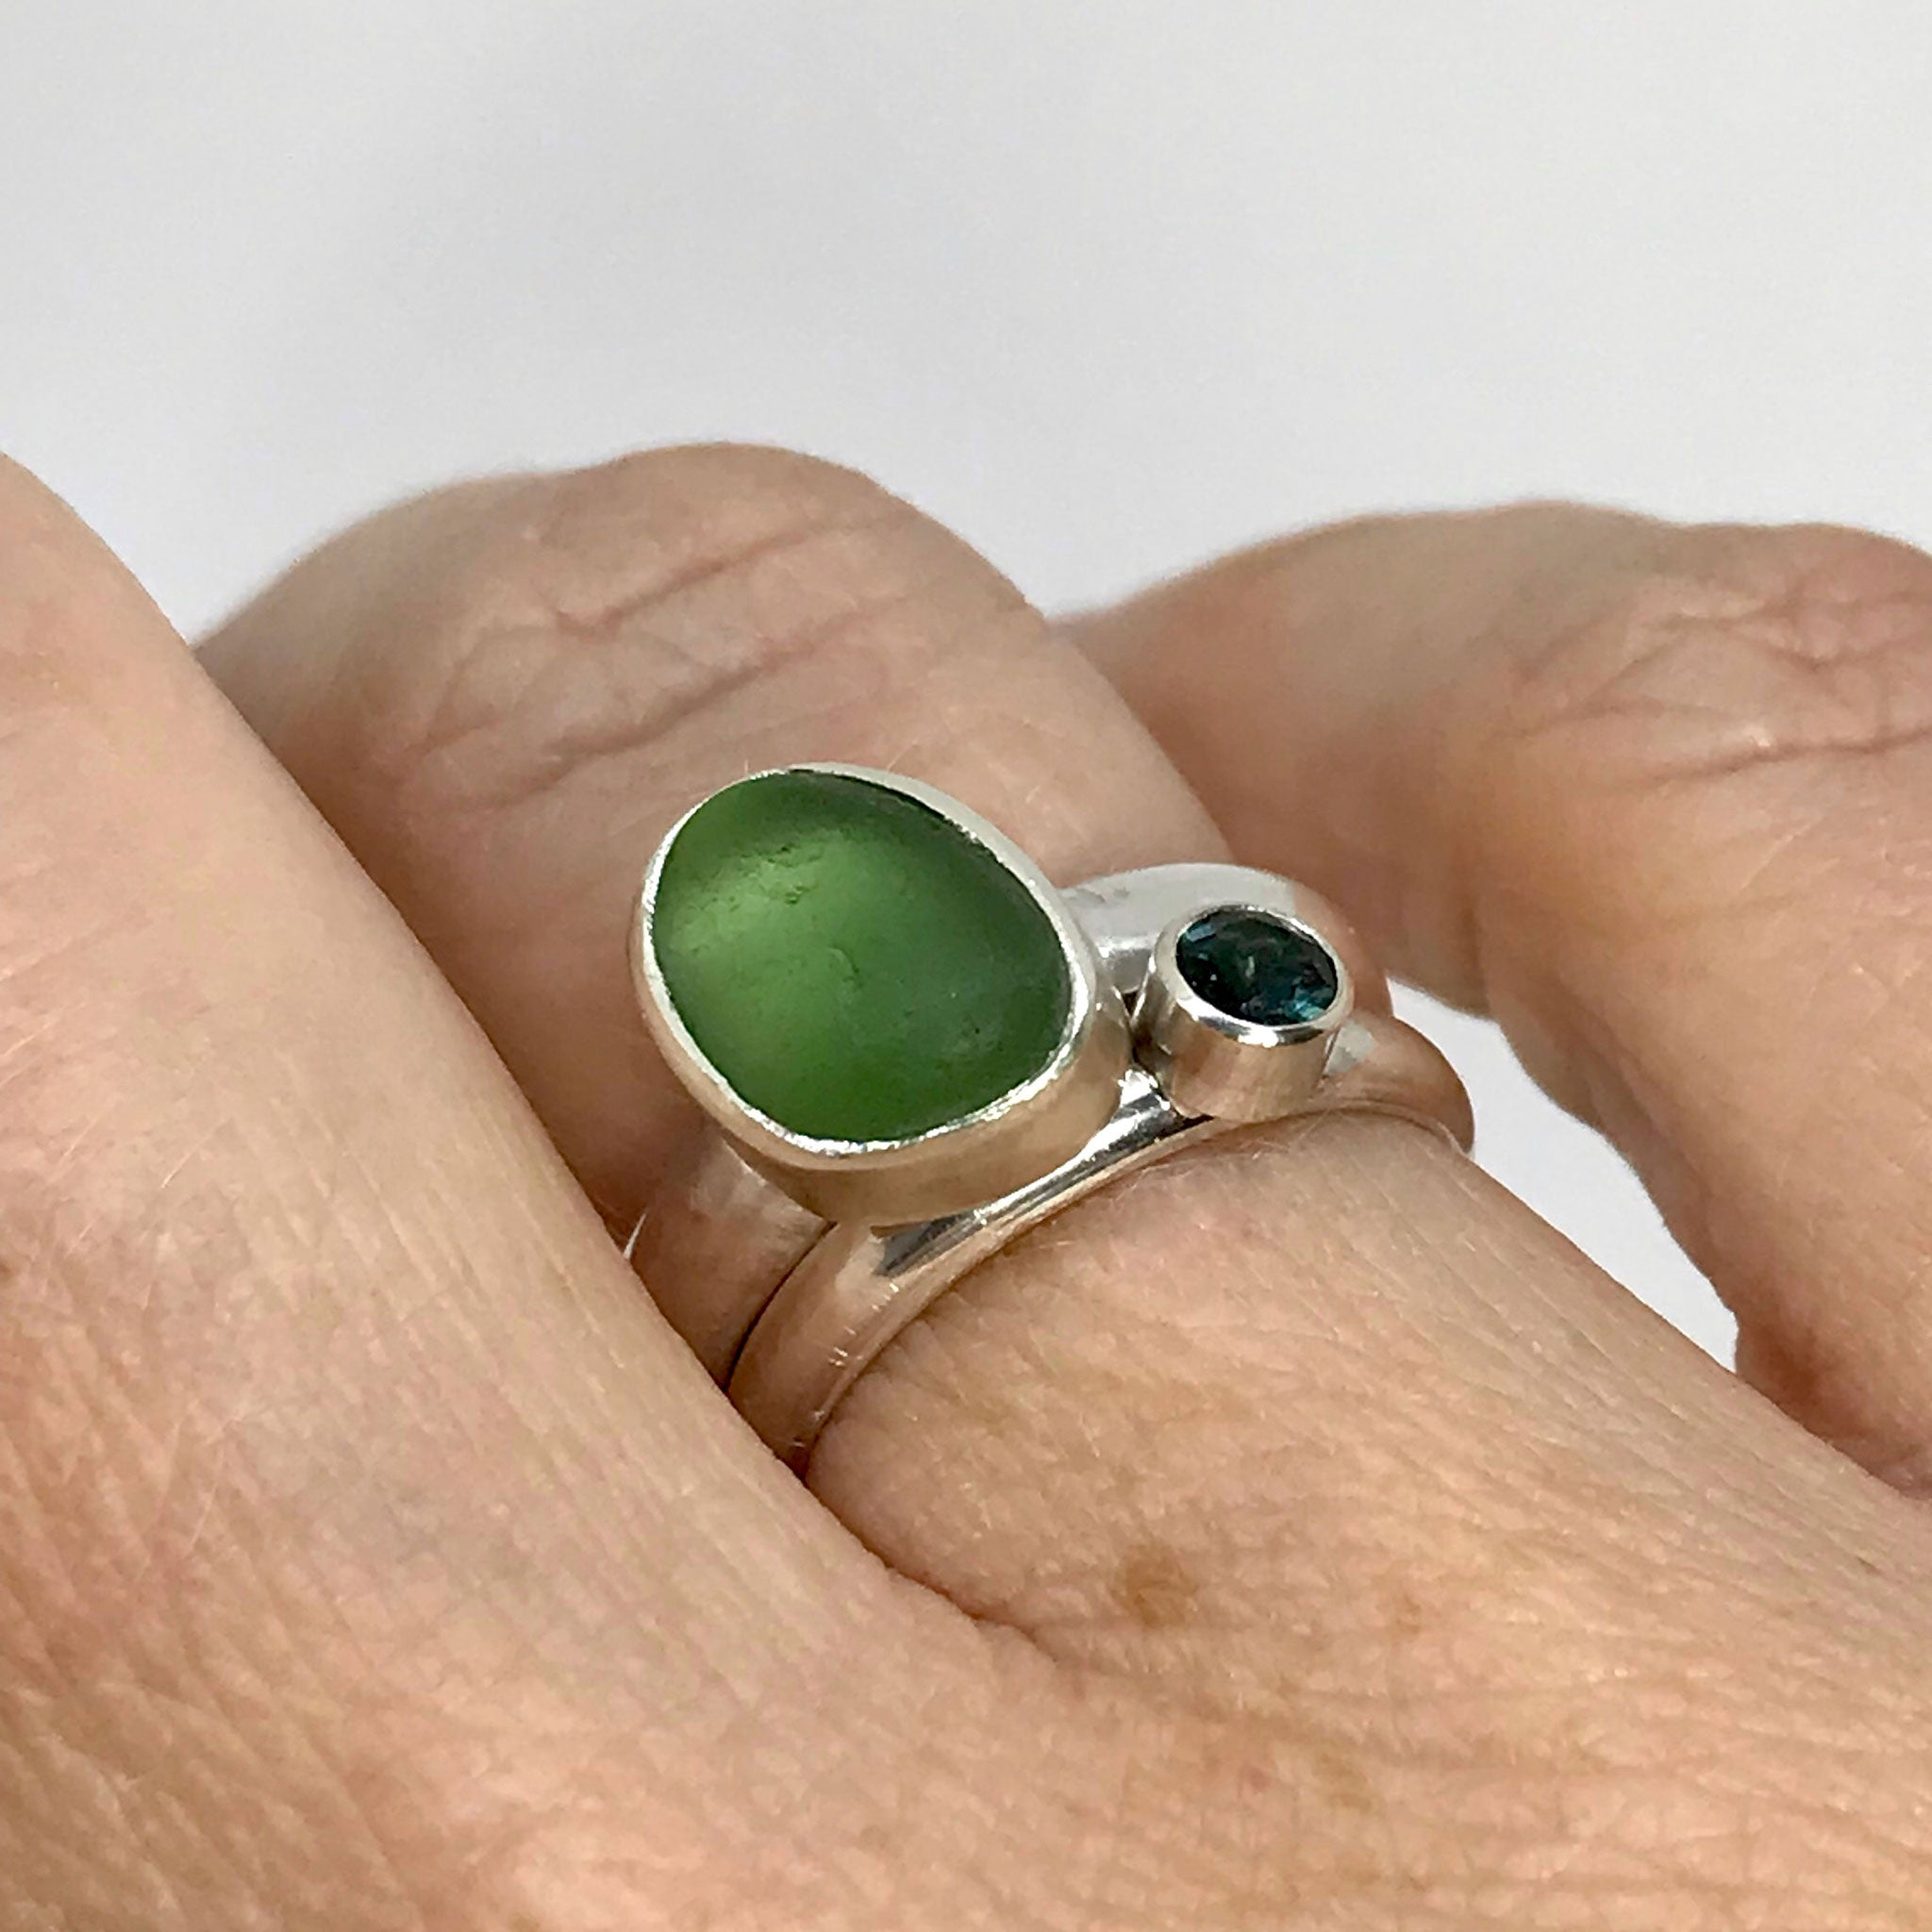 sterling silver rings with green seaglass and blue green tourmaline kriket broadhurst jewellery